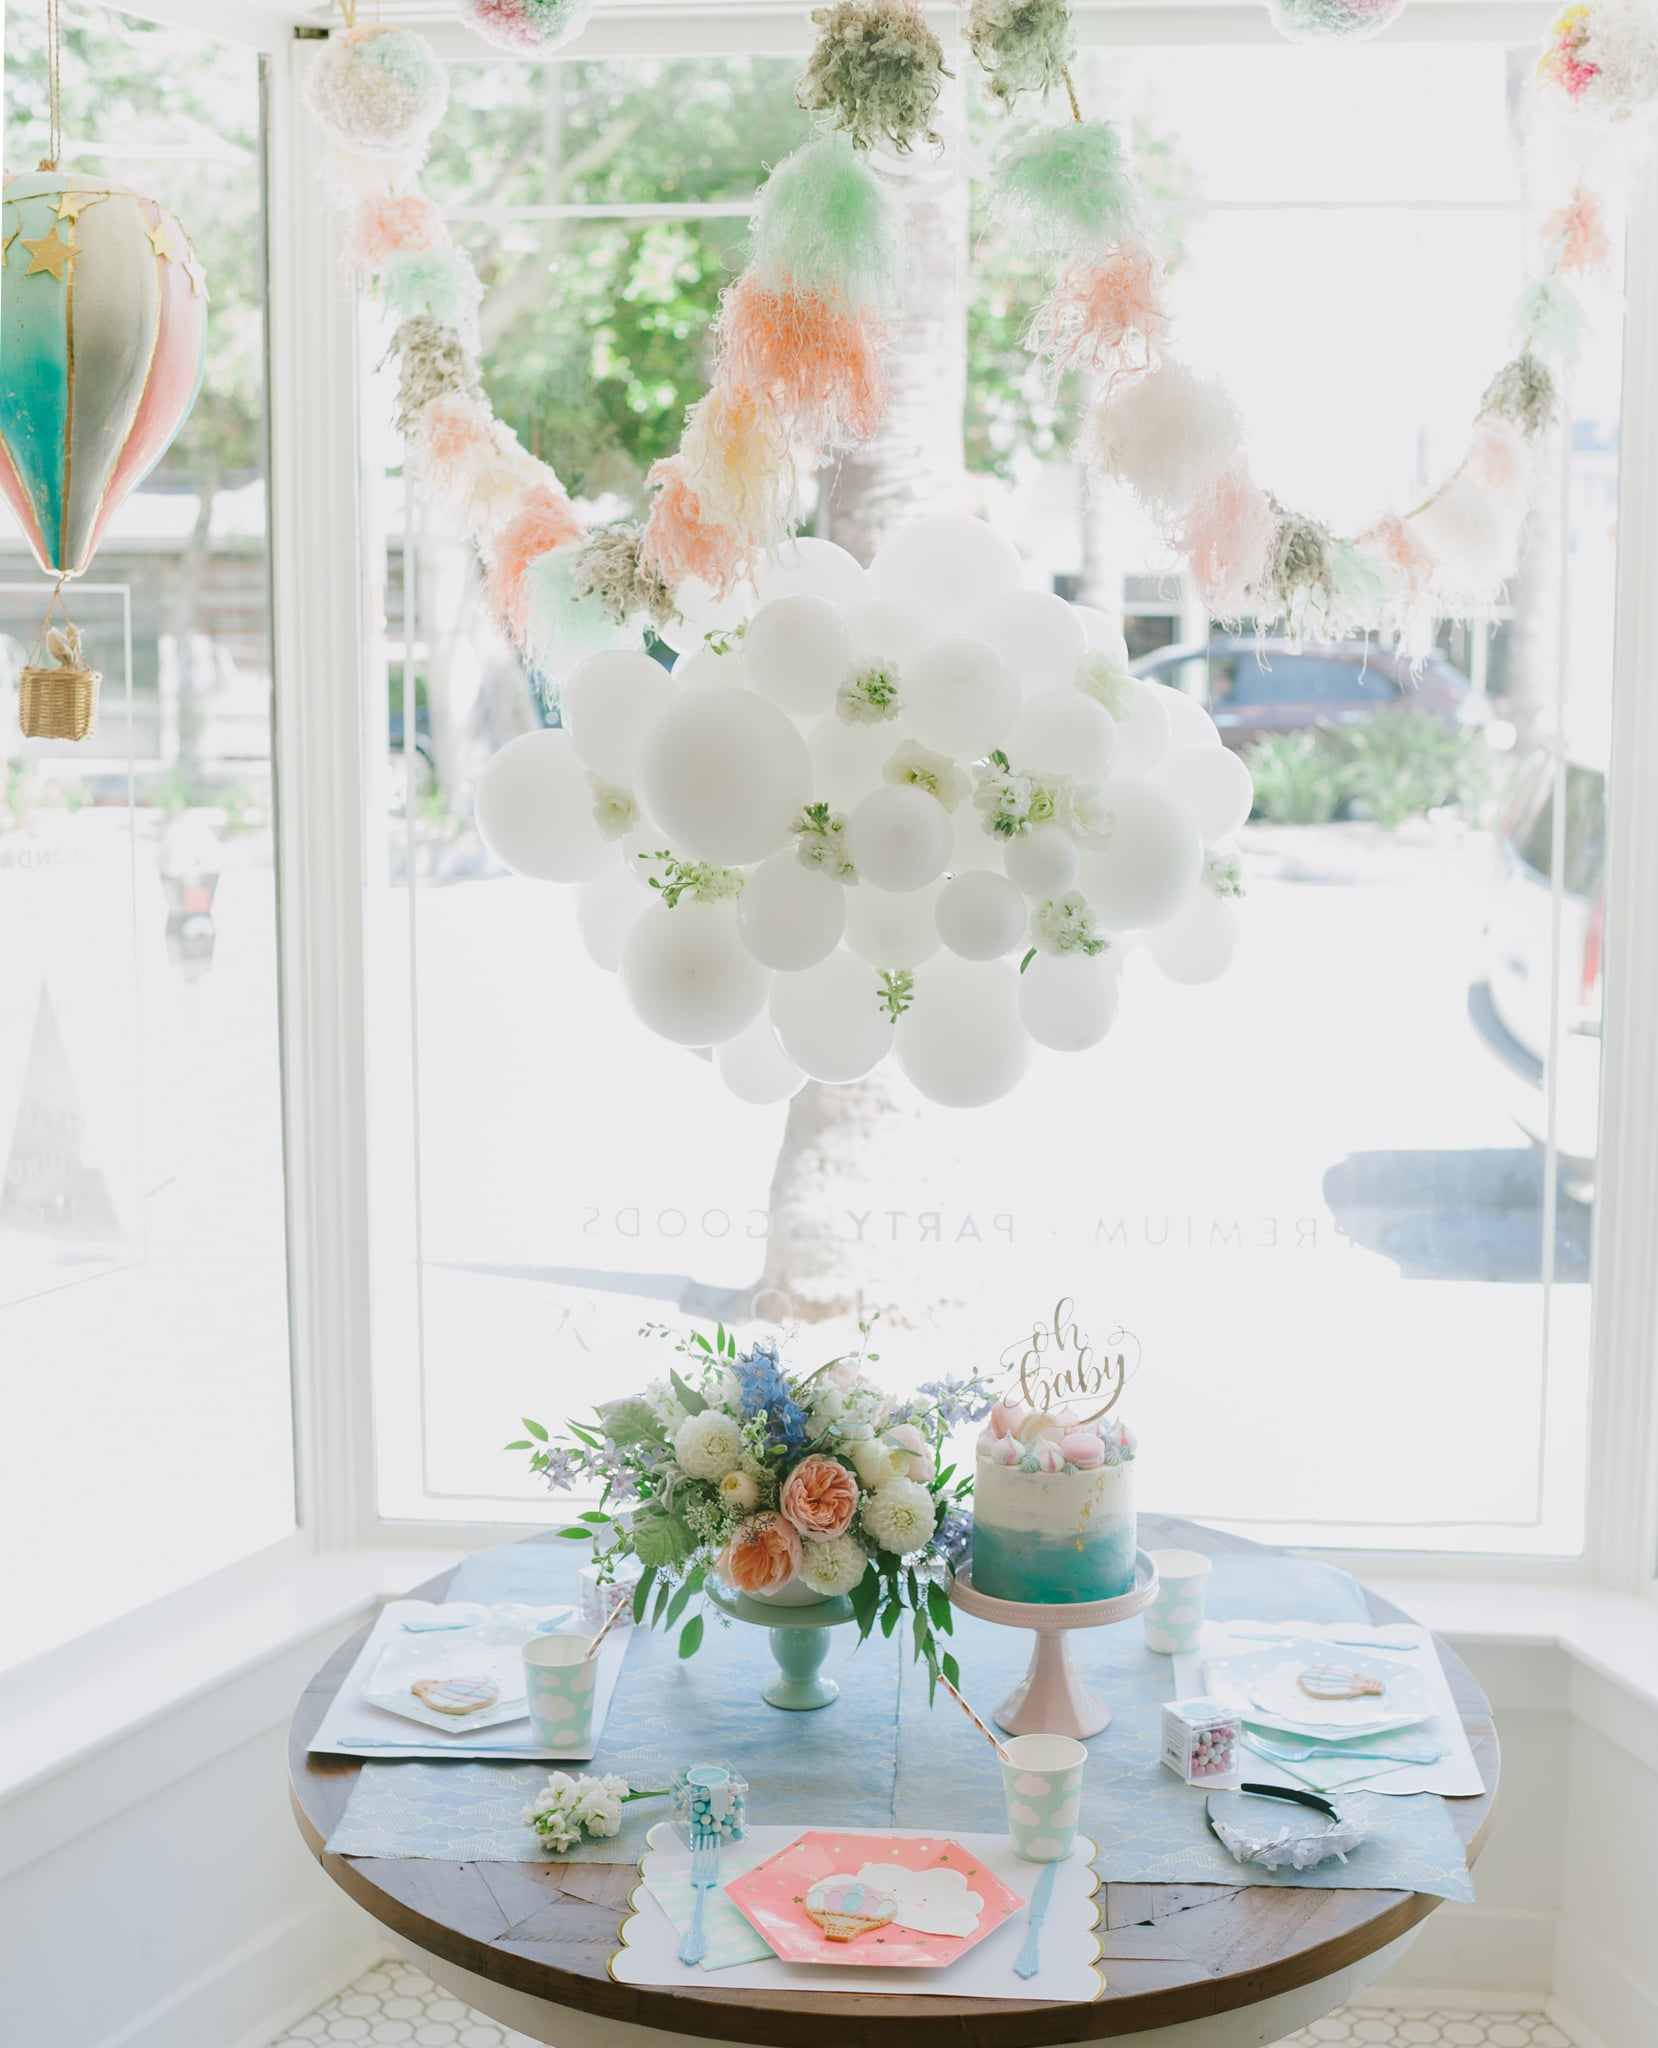 Hot Air Balloon Baby Shower Tablescape And Cloud Balloon   Project Nursery